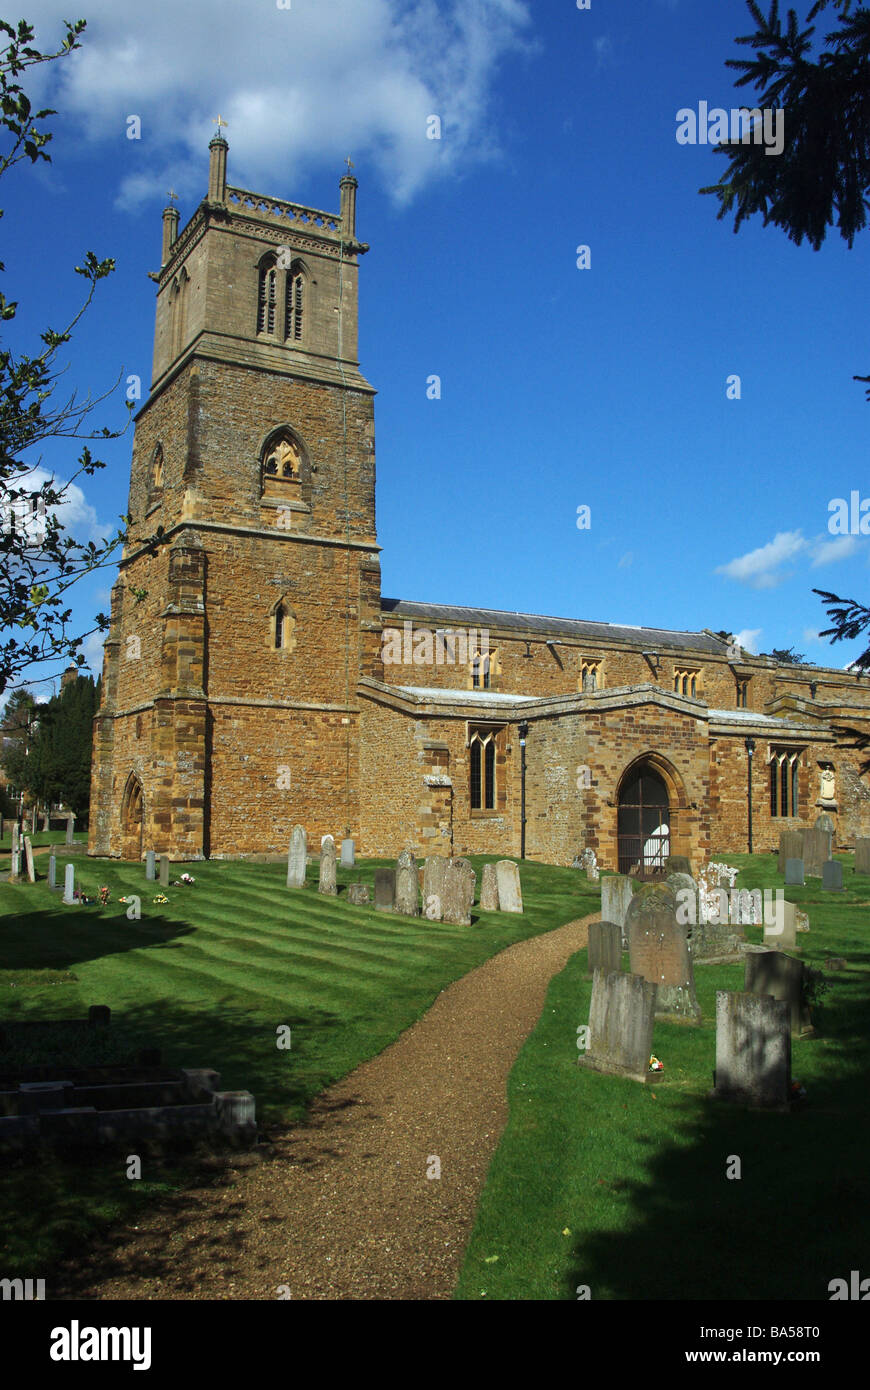 The church of St Mary Magdalene in Ecton, Northamptonshire - Stock Image